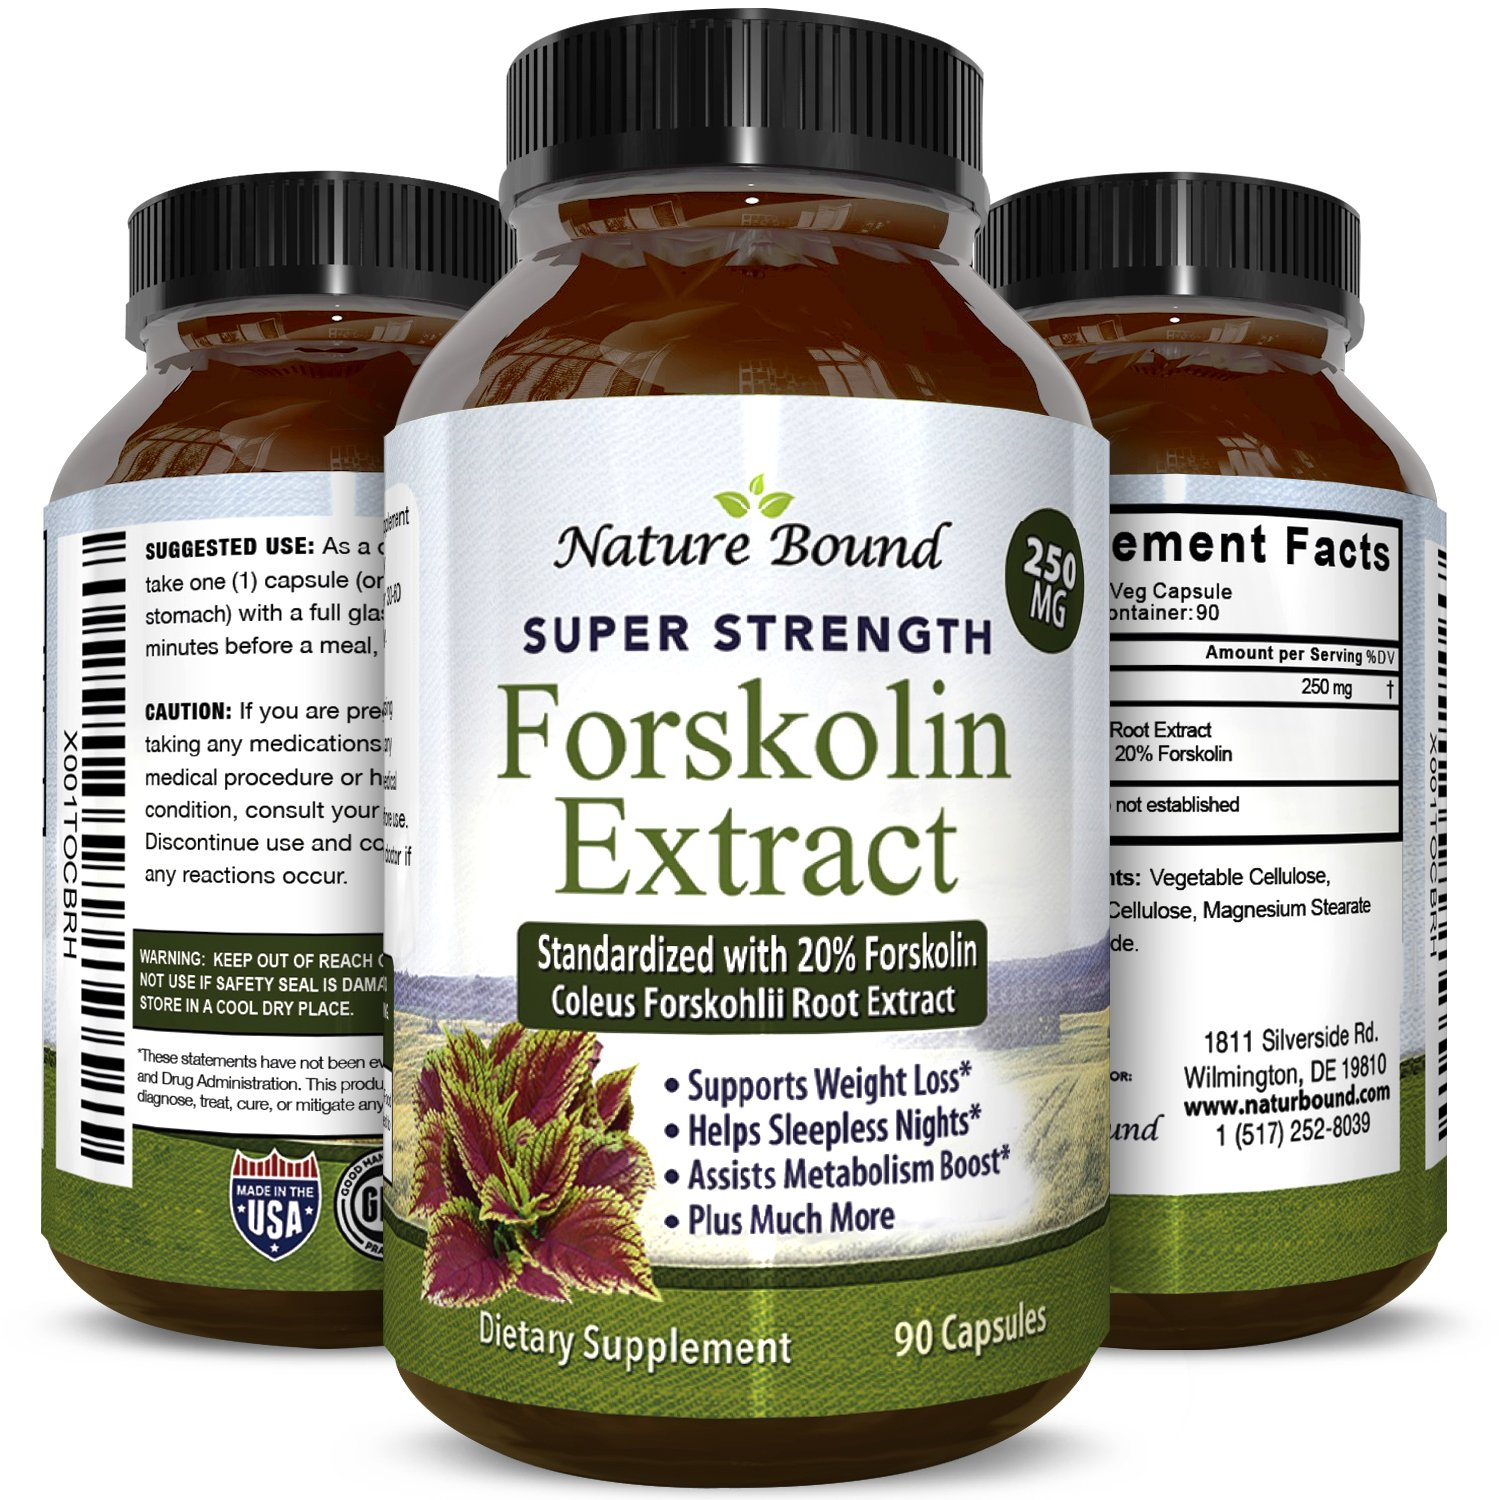 Max Strength Forskolin Weight Loss Supplement for Men and Women - Fast Acting Diet Pills Natural Appetite Suppressant Potent Fat Burner Builds Muscle Boosts Energy 90 Veggie Capsules